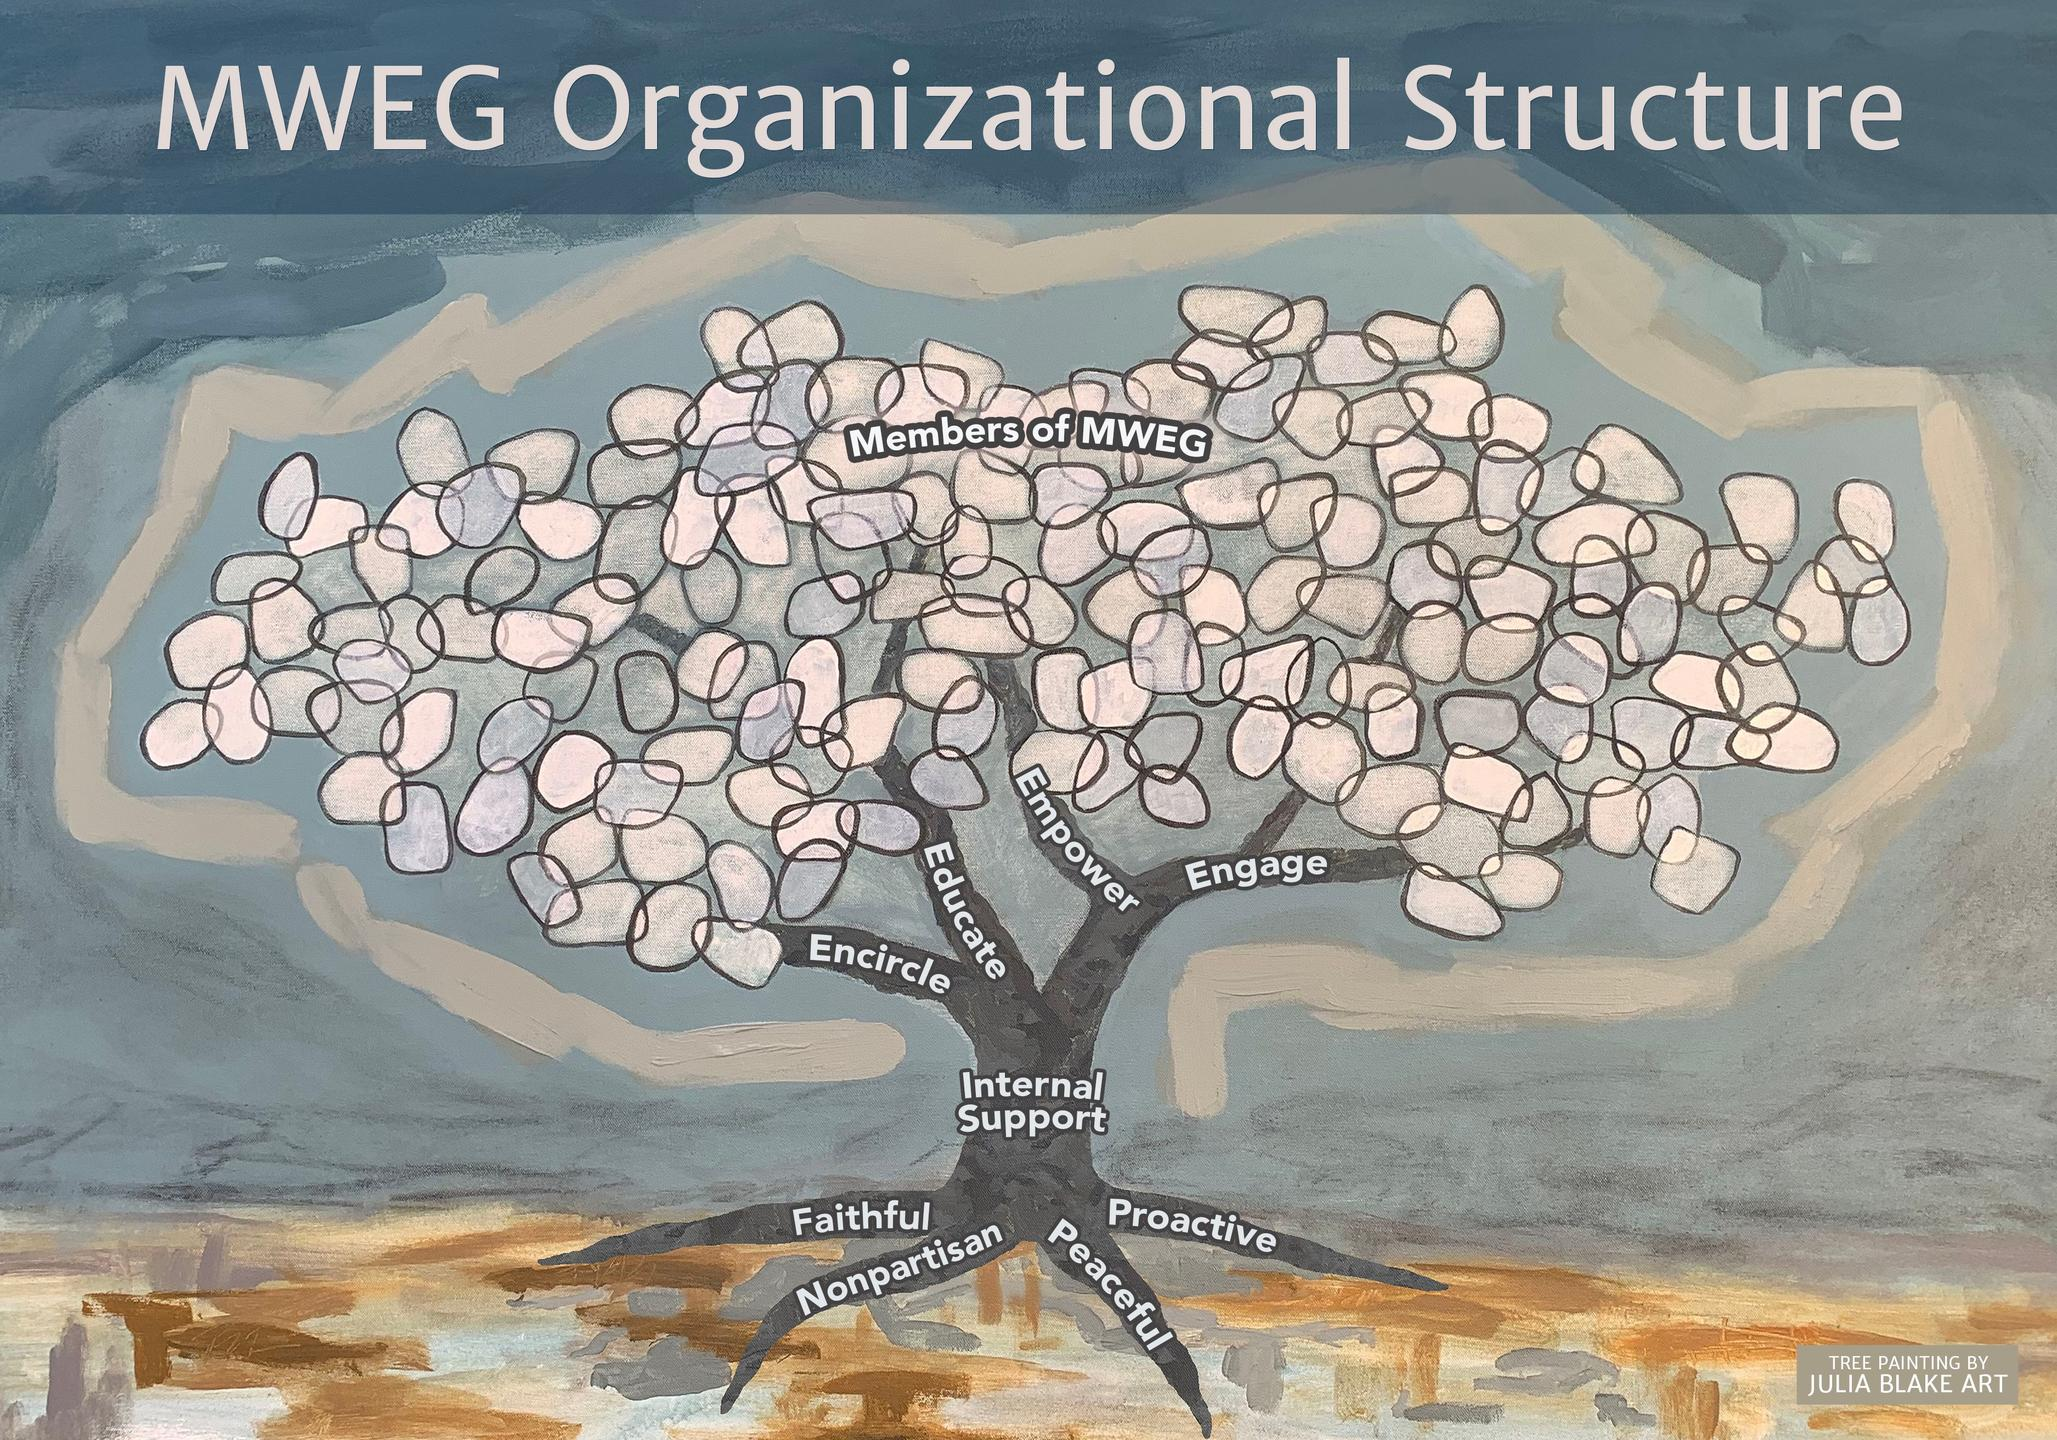 Illustration of a Tree Explaining MWEG's Organizational Structure